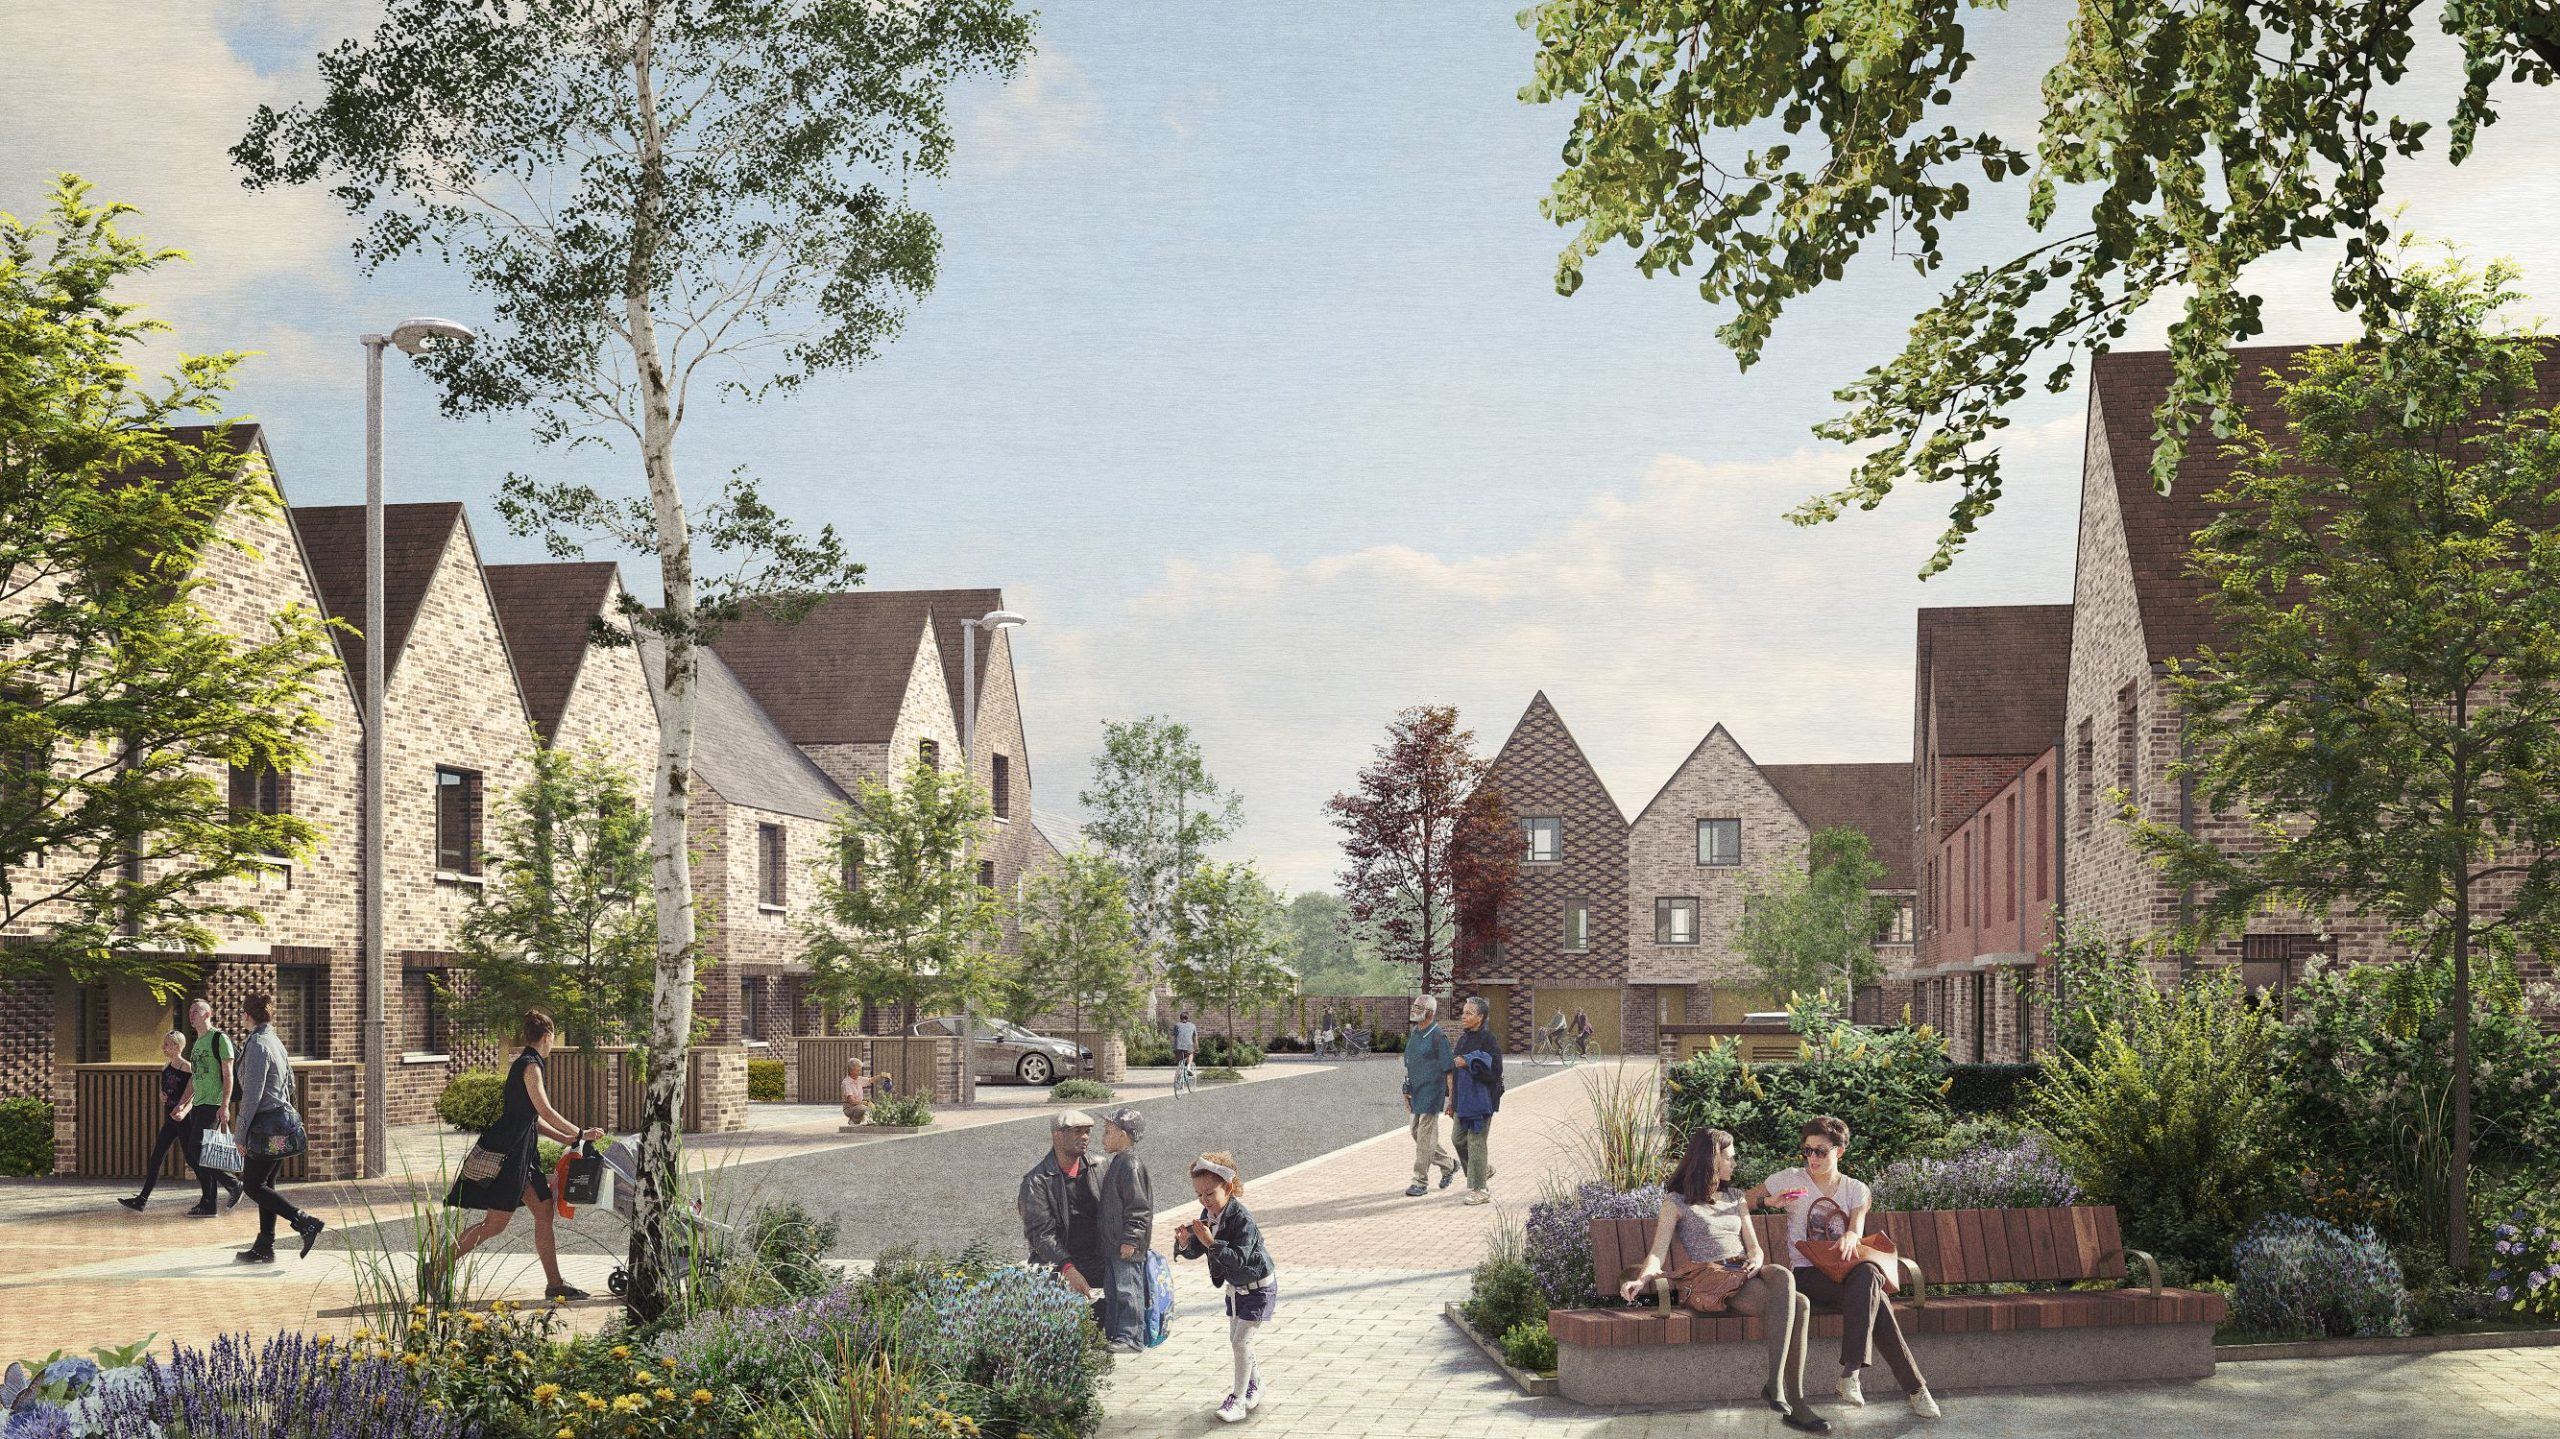 Oakfield project a blueprint for future housing, says Nationwide